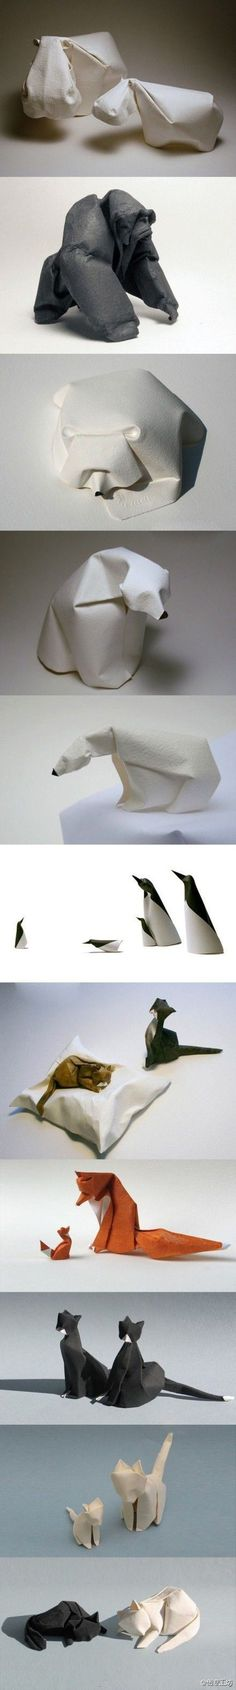 Origami Zoo by Dinh Truong Giang #Origami #Animals: